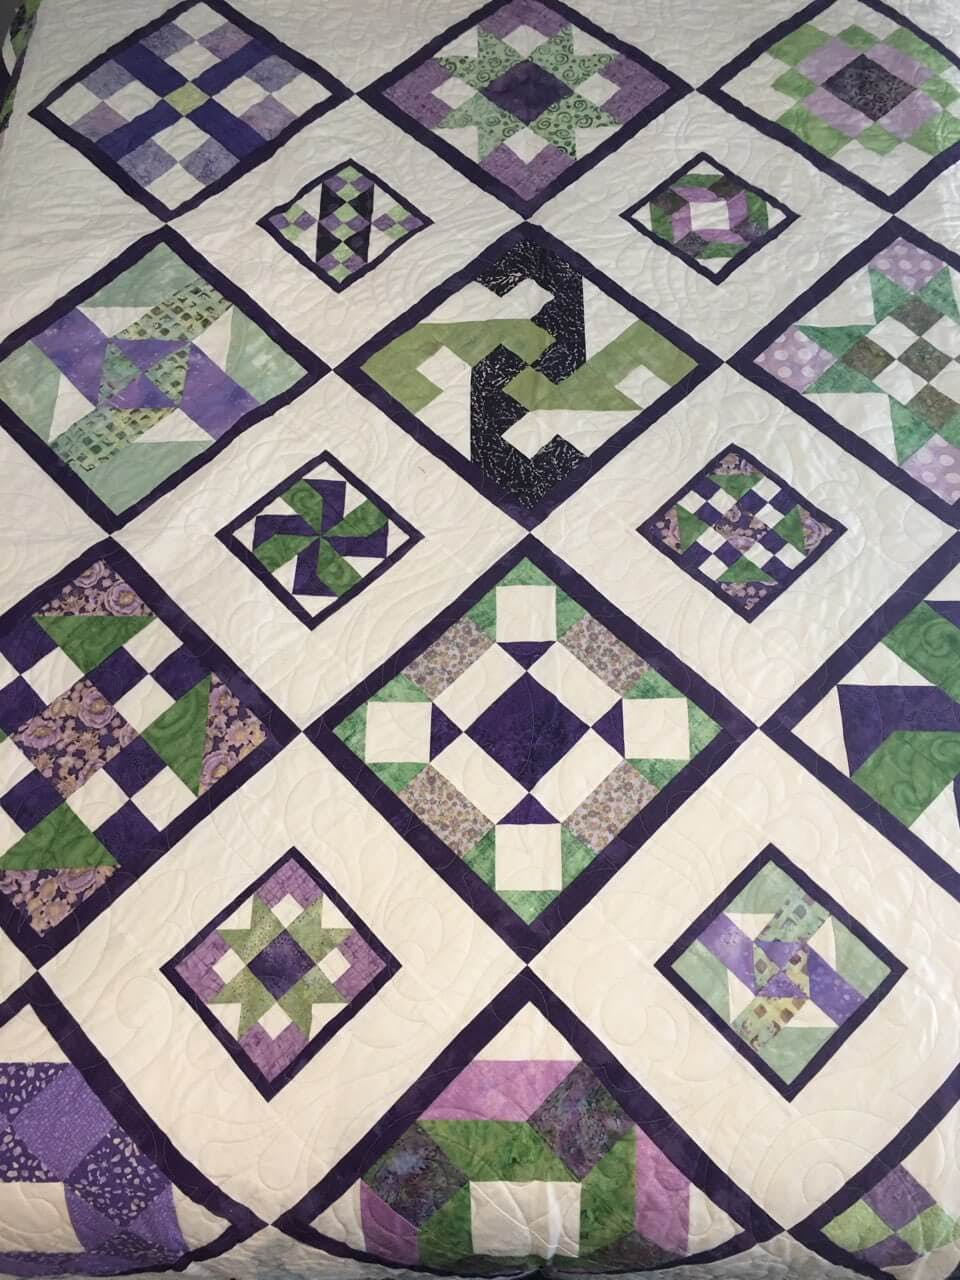 New quilts are being donated